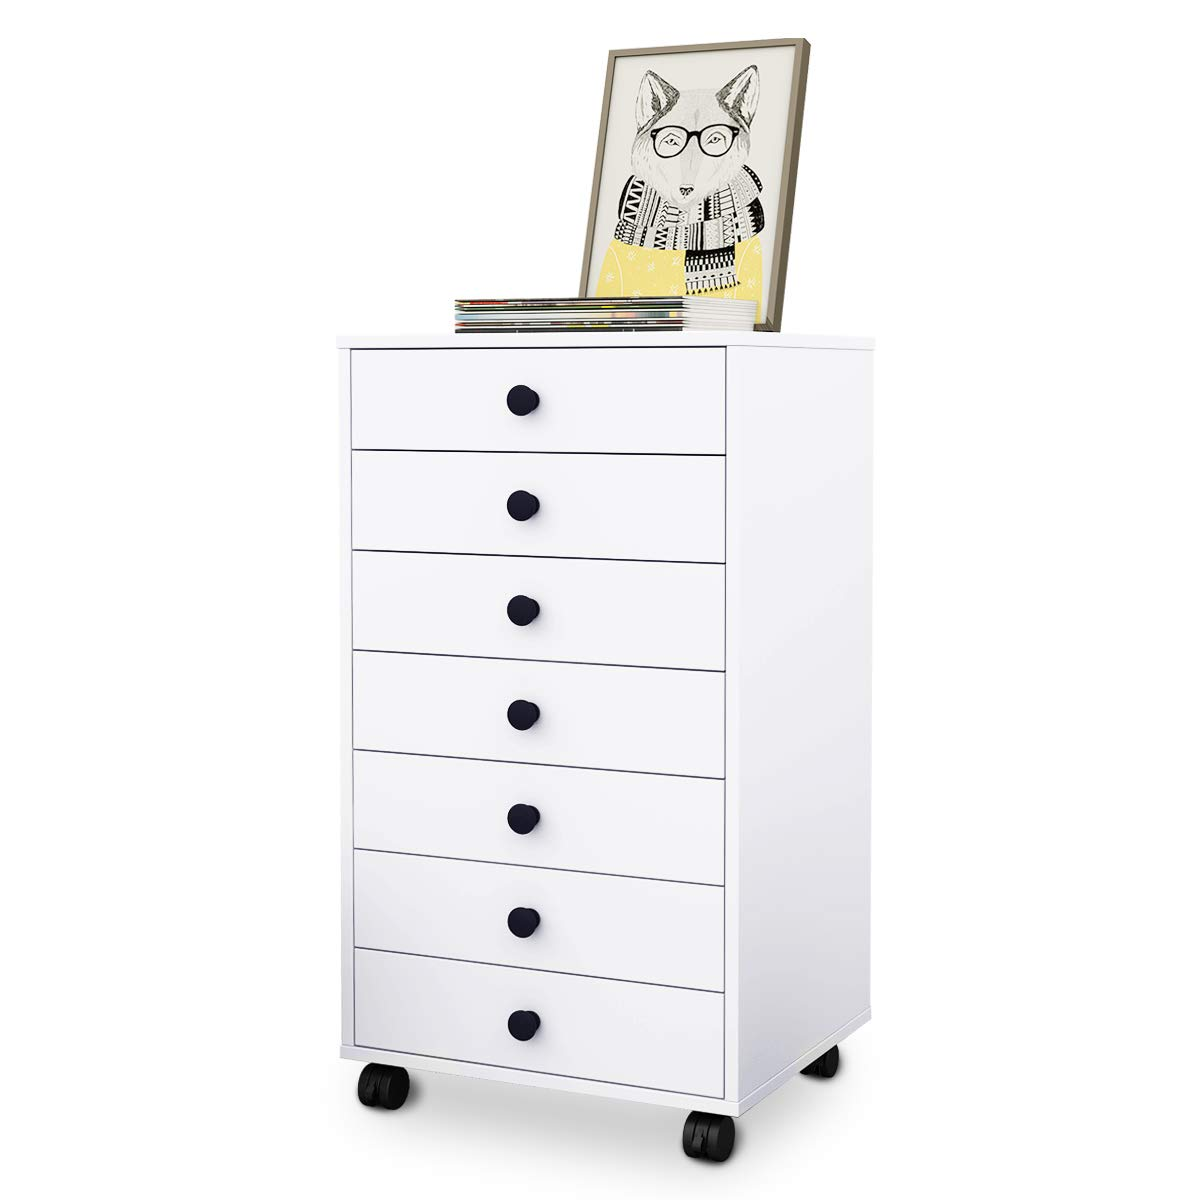 DEVAISE 7-Drawer Mobile Cabinet,Chest Dresser with Handle for Closet & Office, White (New White)